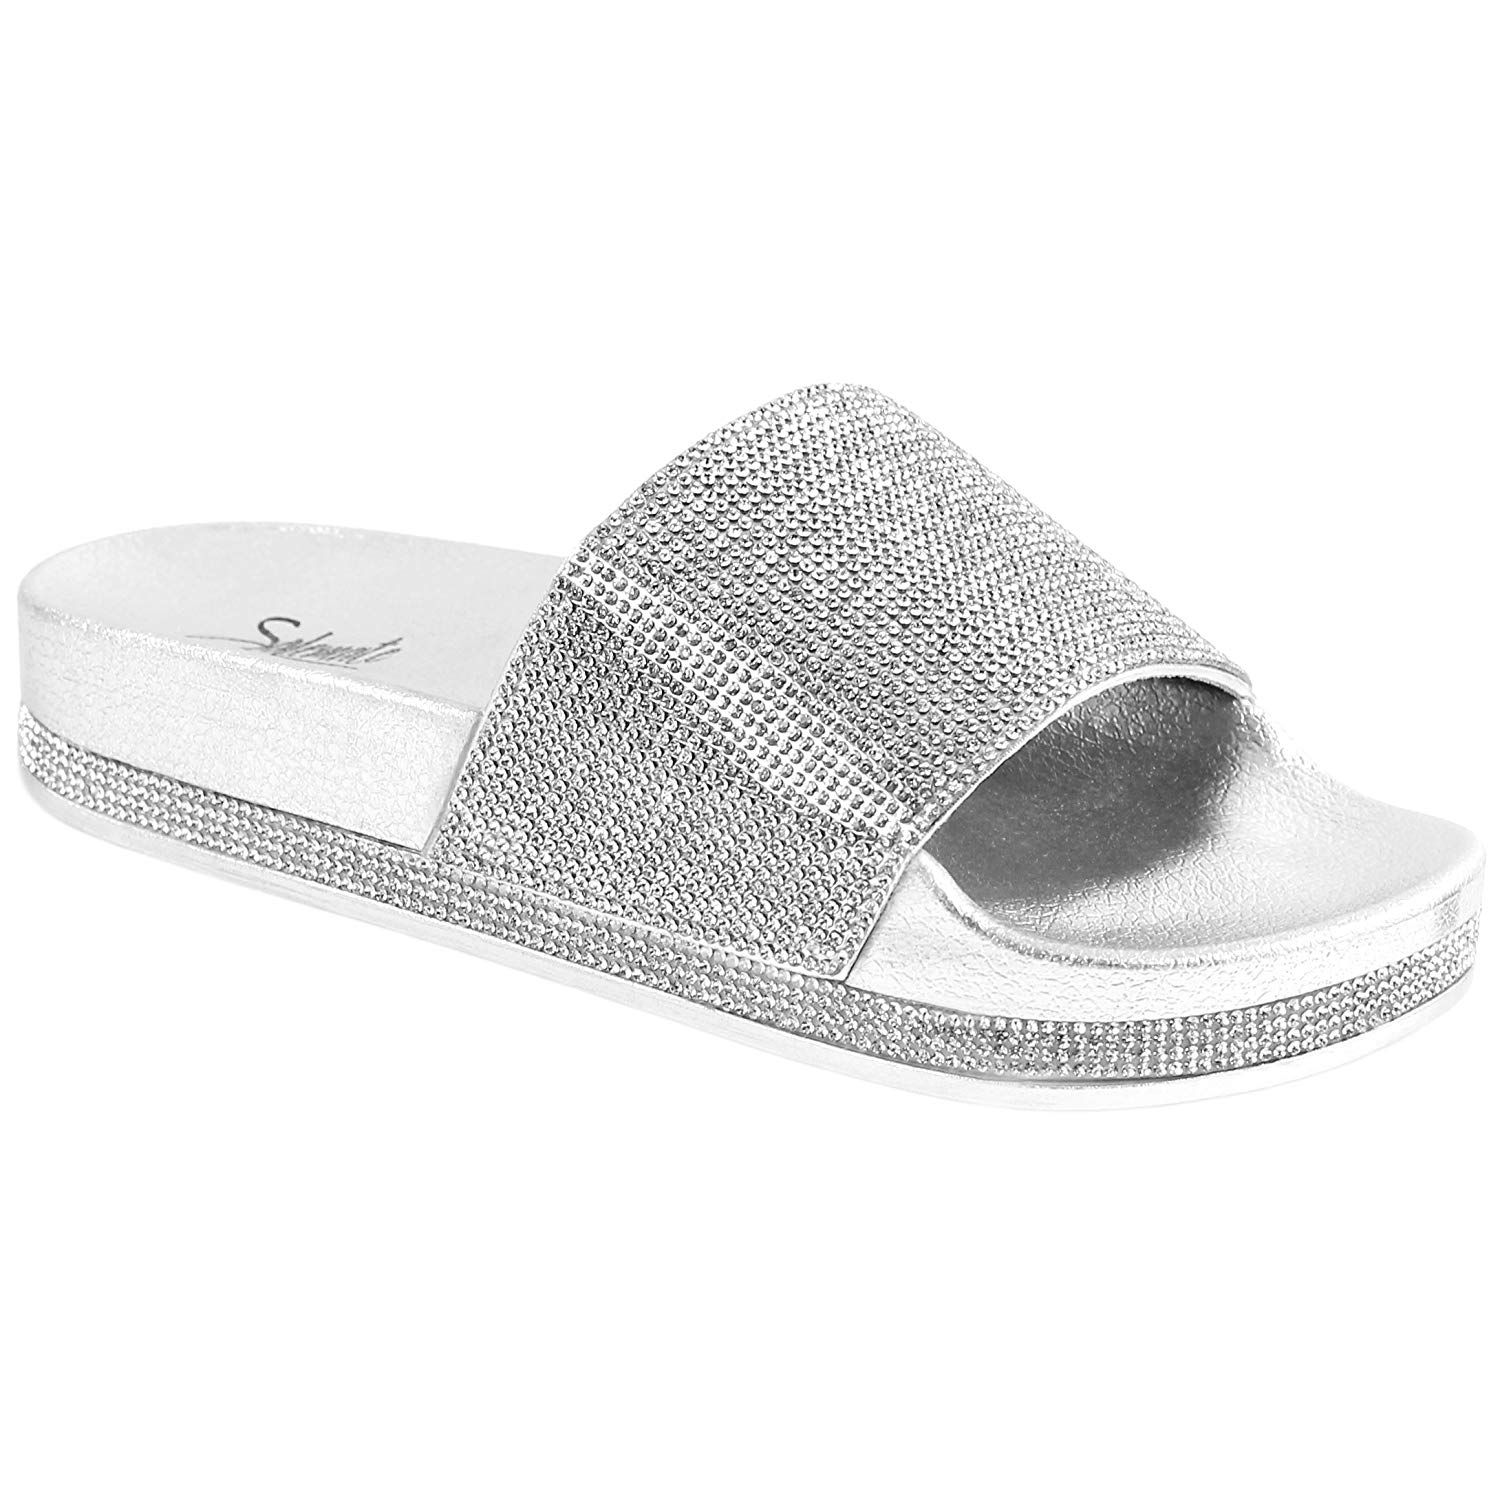 eb8e98beaf4 Solemate Women s Rhinestone Glitter Crystal Slide Footbed Platform Sandal  Slippers     Very nice of you to have dropped by to see the photo.